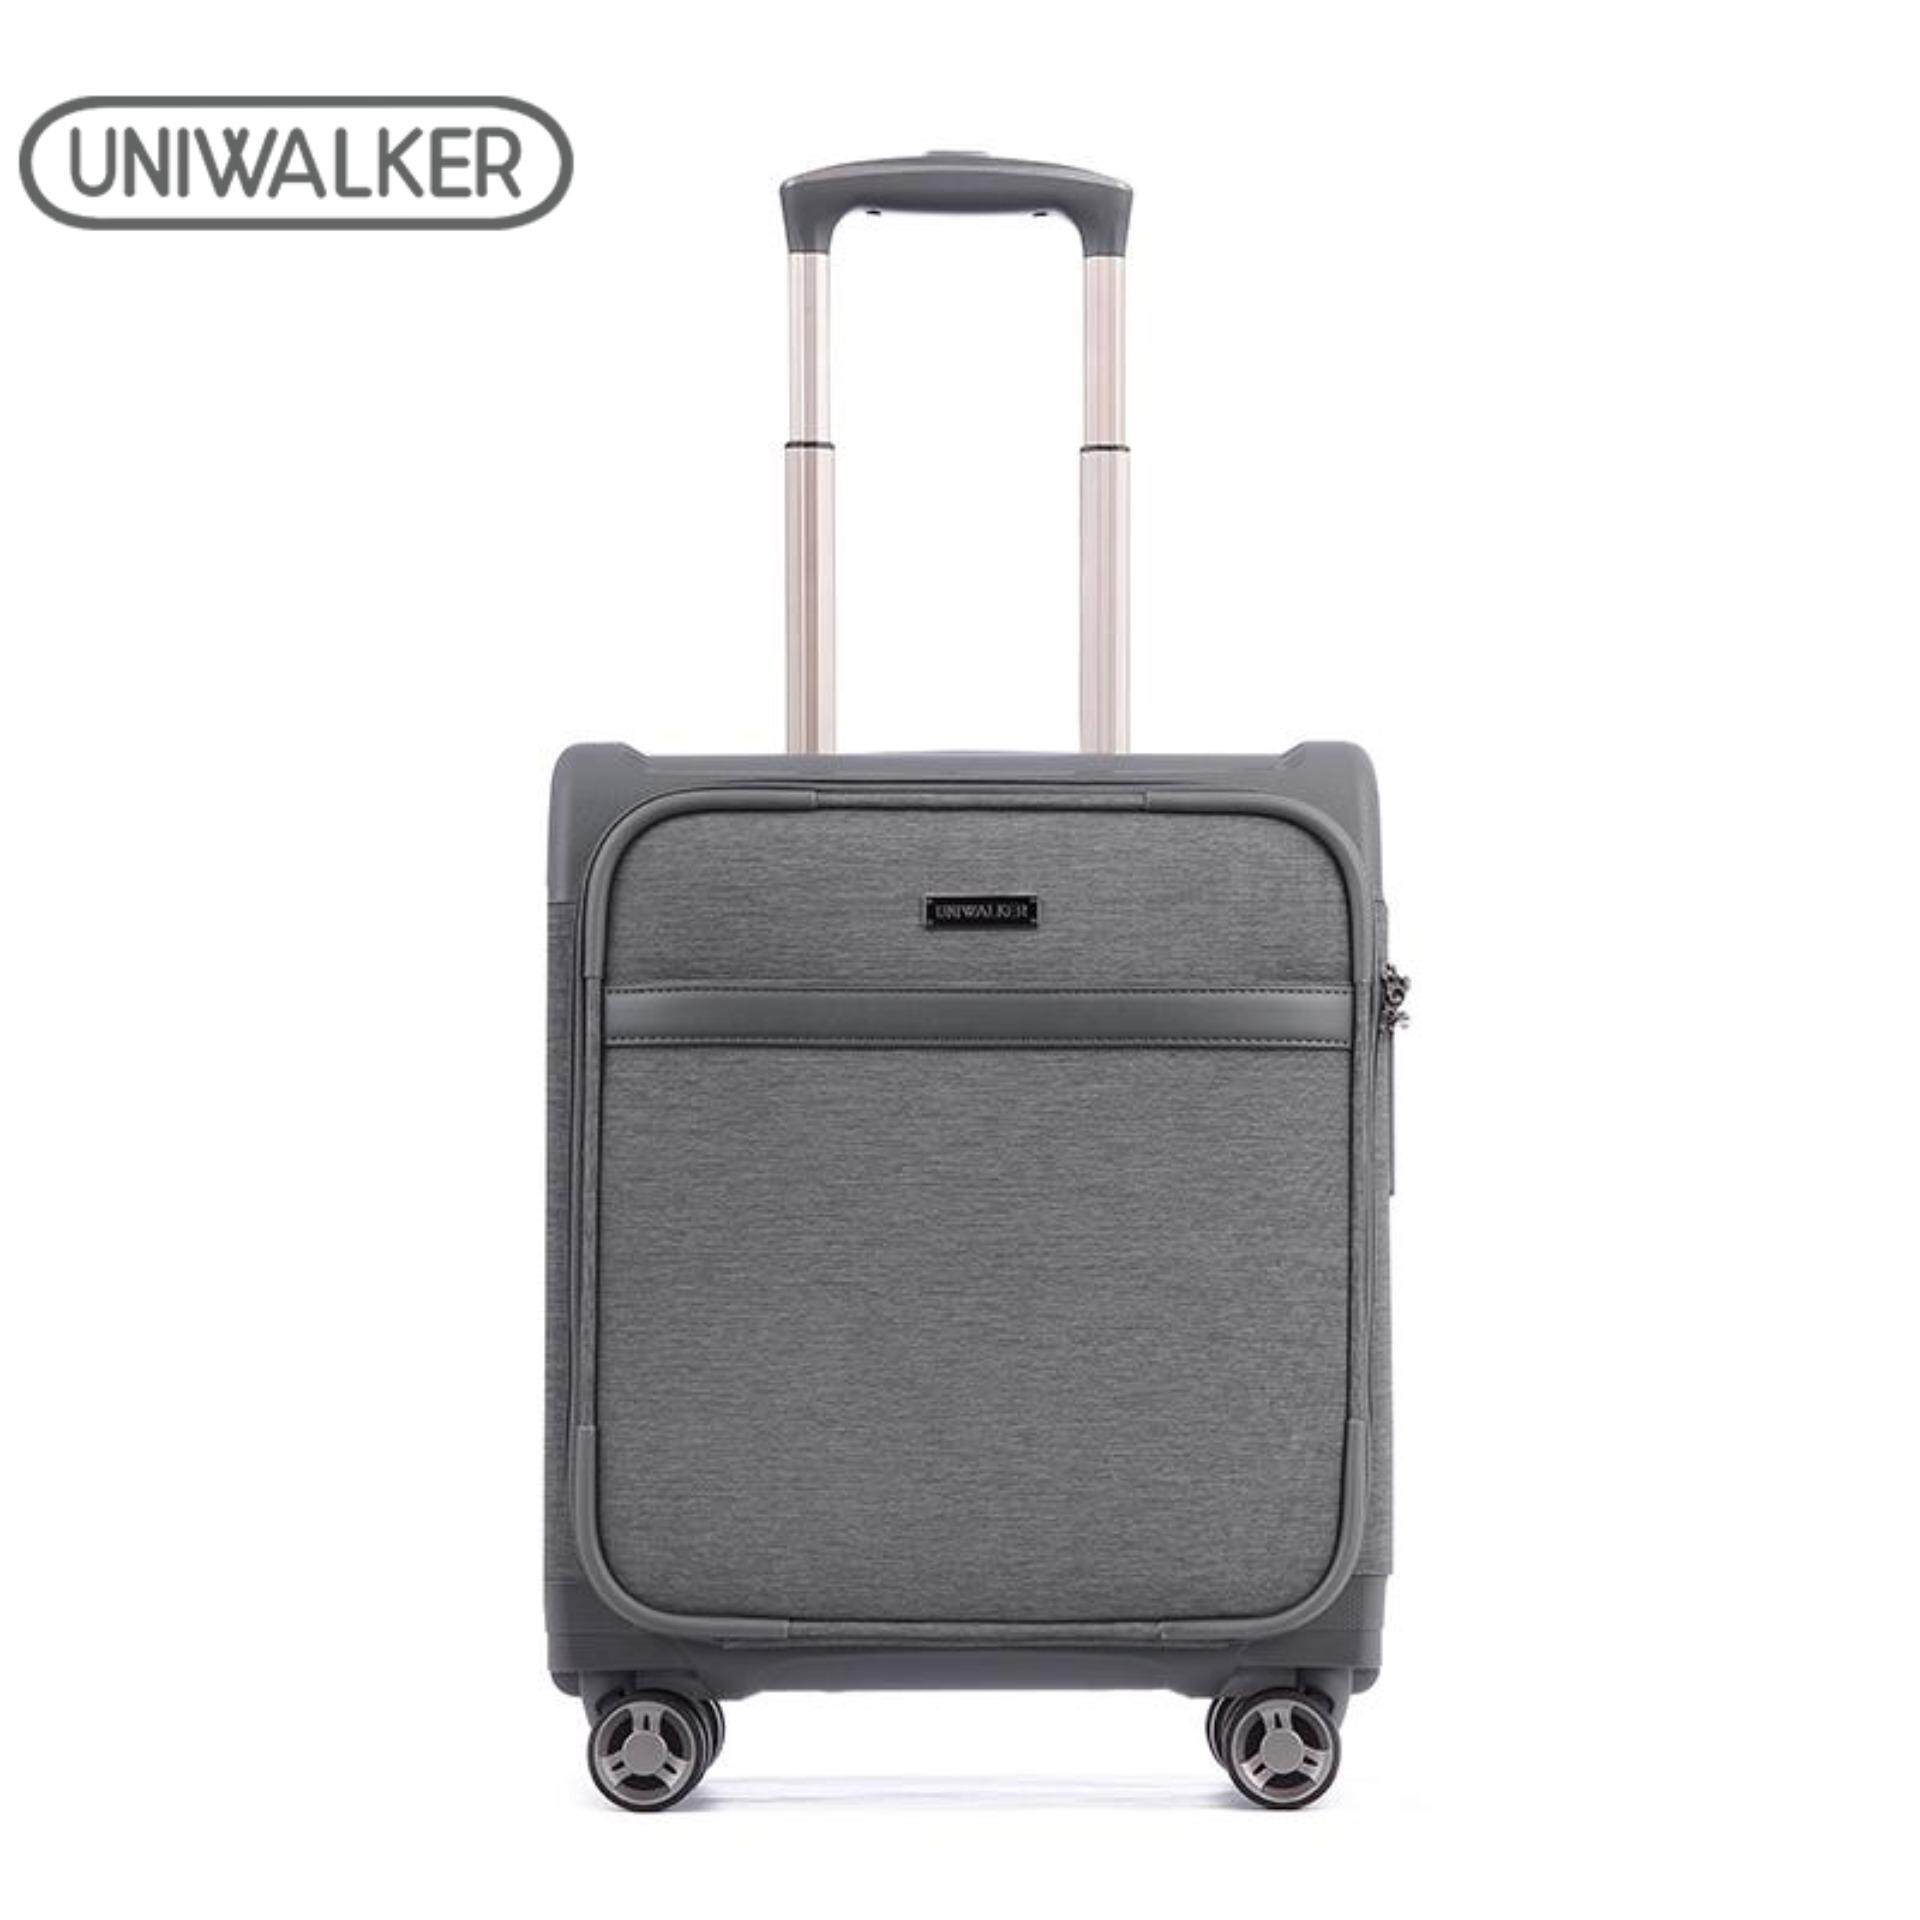 Ultralight Travel Suitcase Expandable+30%more Oxford Soft-Case luggage 4 Universal wheels with TSA Lock Trolley Luggage 16 inch